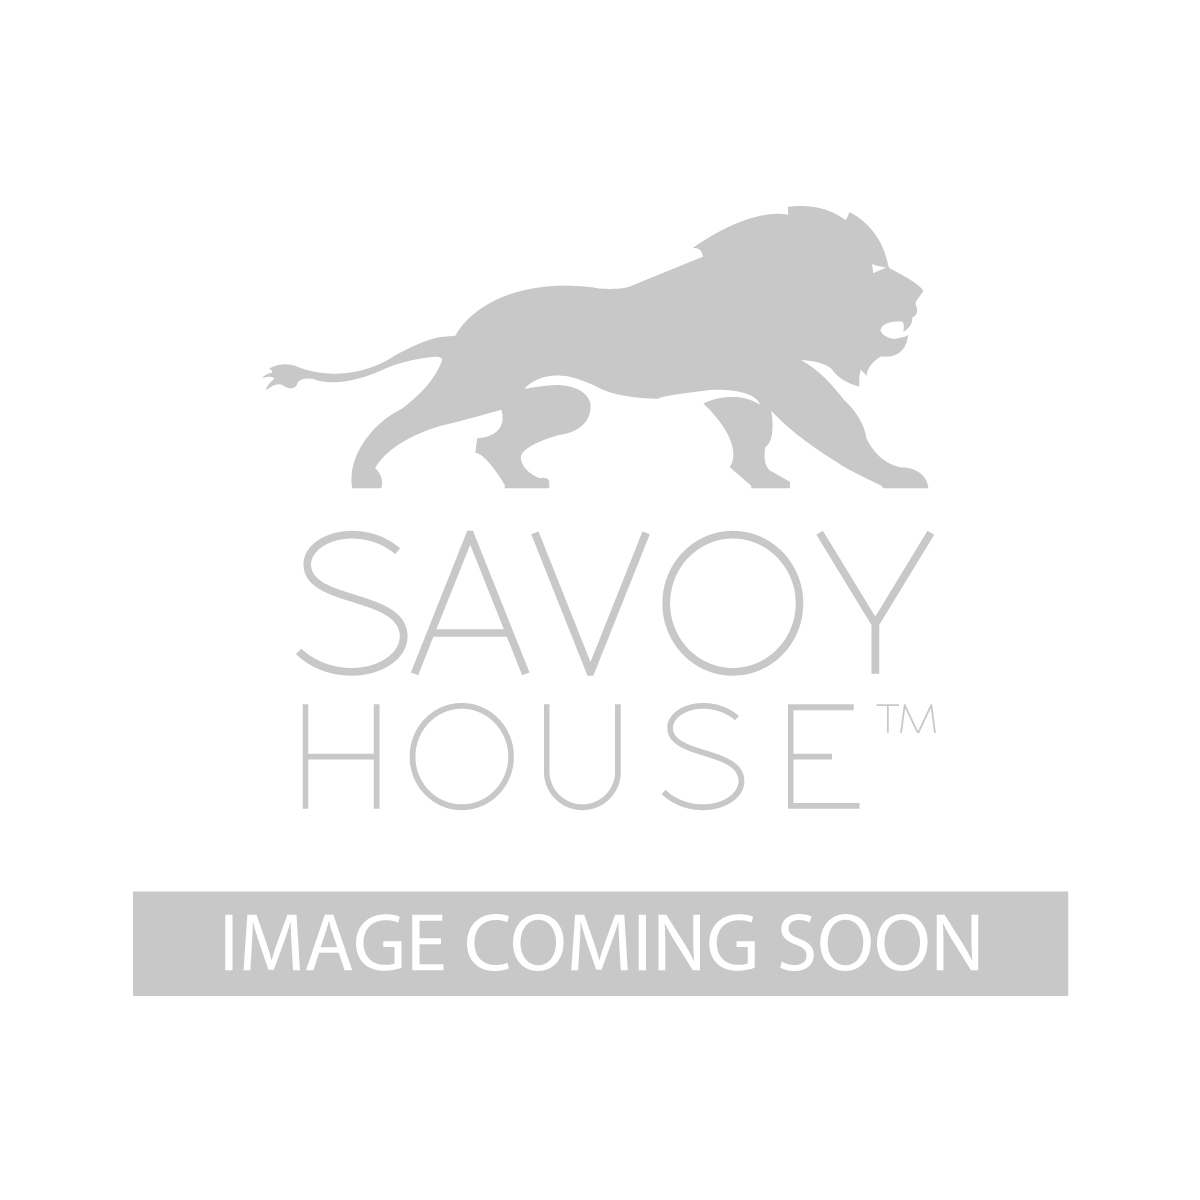 1 6057 6 87 gage 6 light chandelier by savoy house gage 6 light chandelier aloadofball Gallery